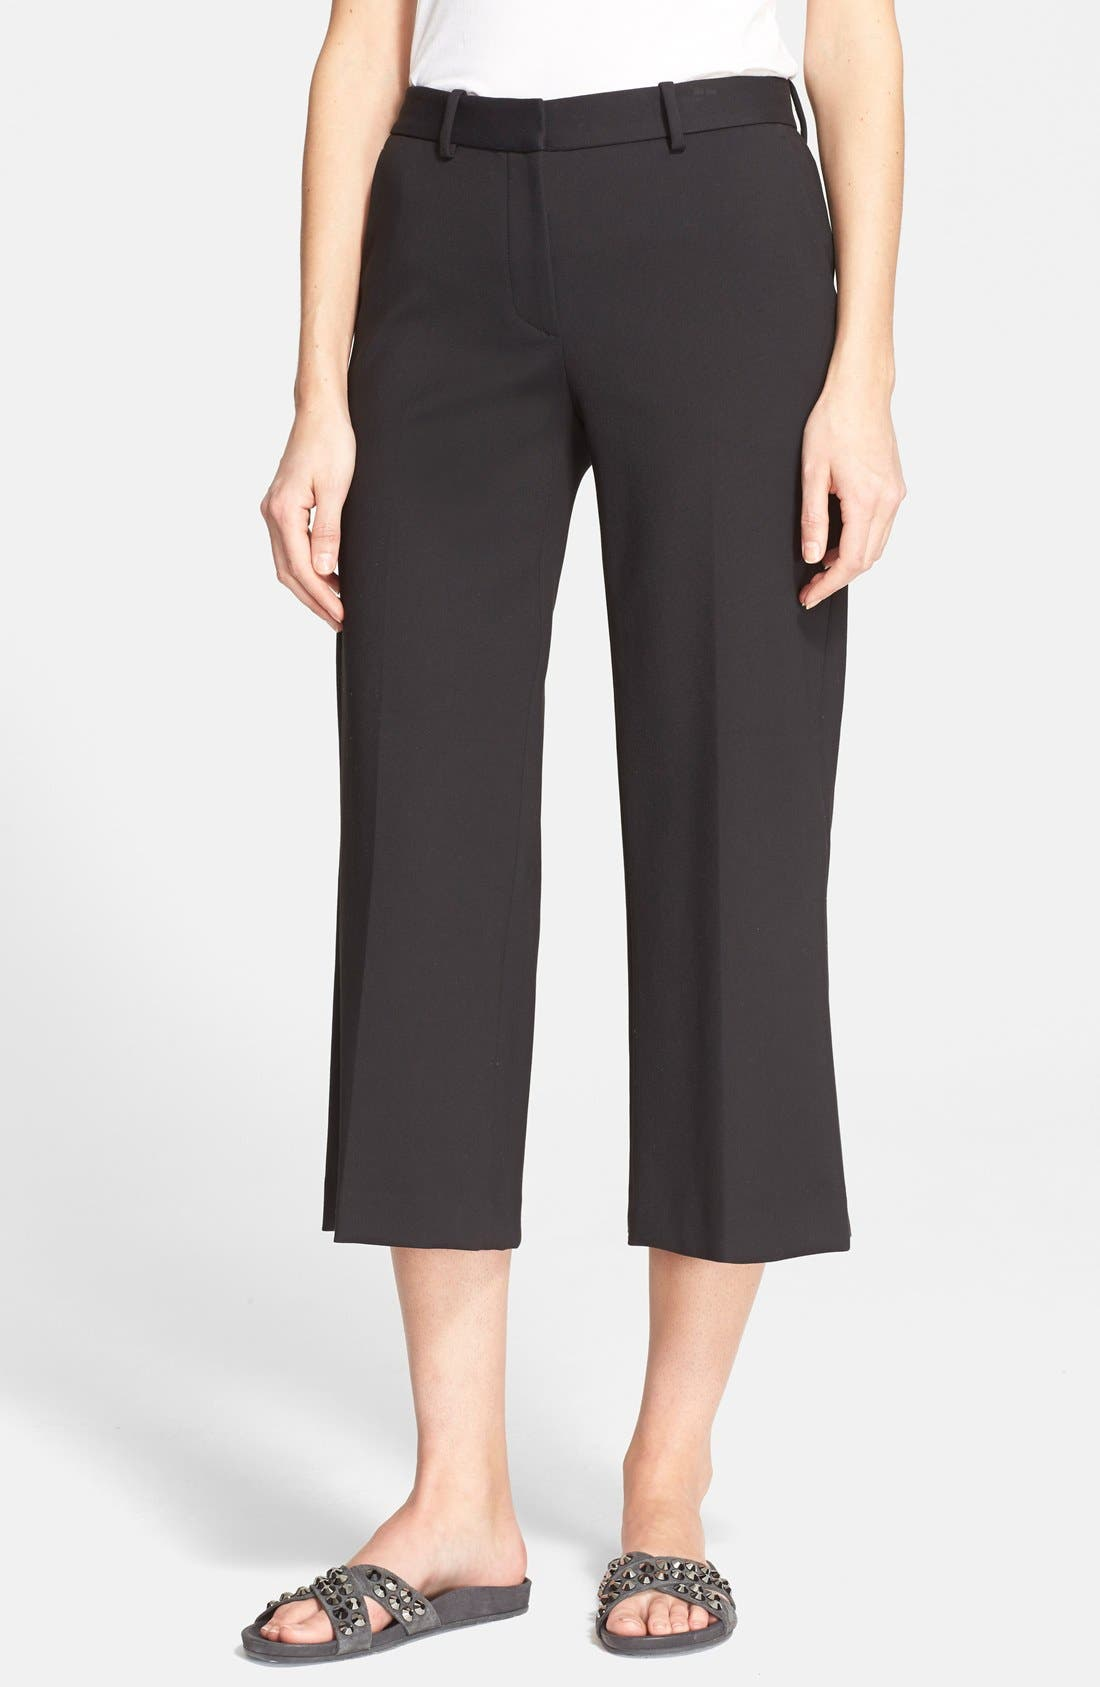 THEORY 'Sprinza' Wide Leg Crop Pants, Main, color, 001